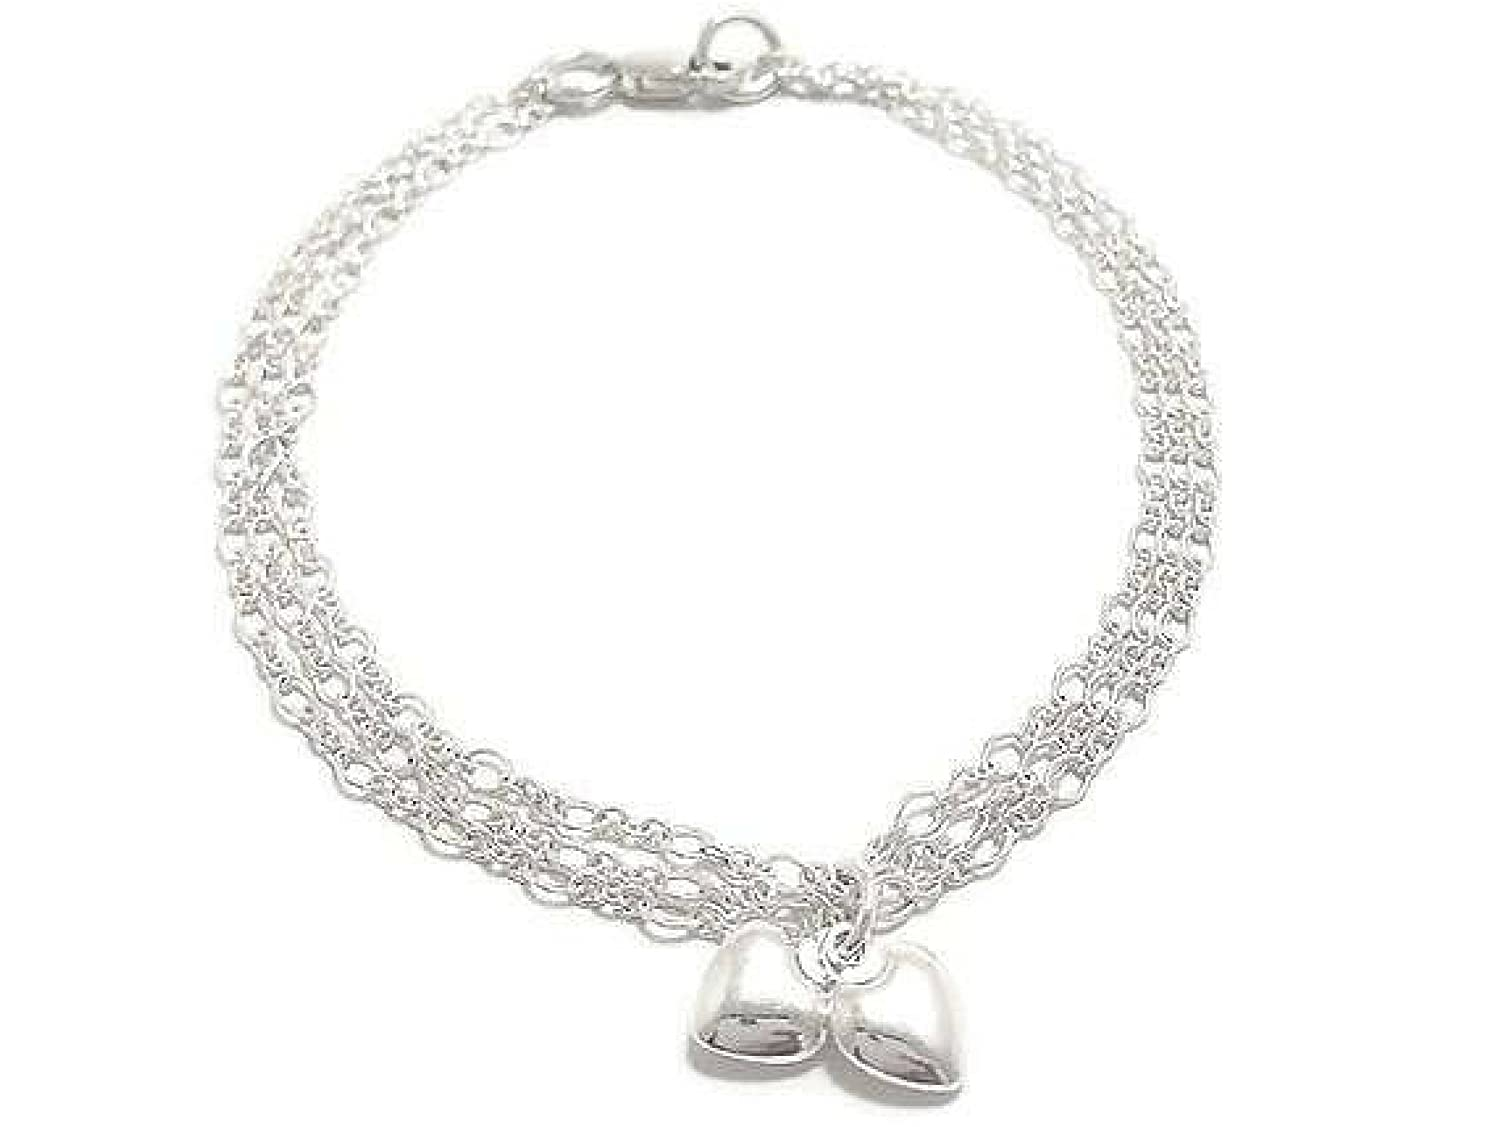 .925 Sterling Silver Double Heart Charm Pendant